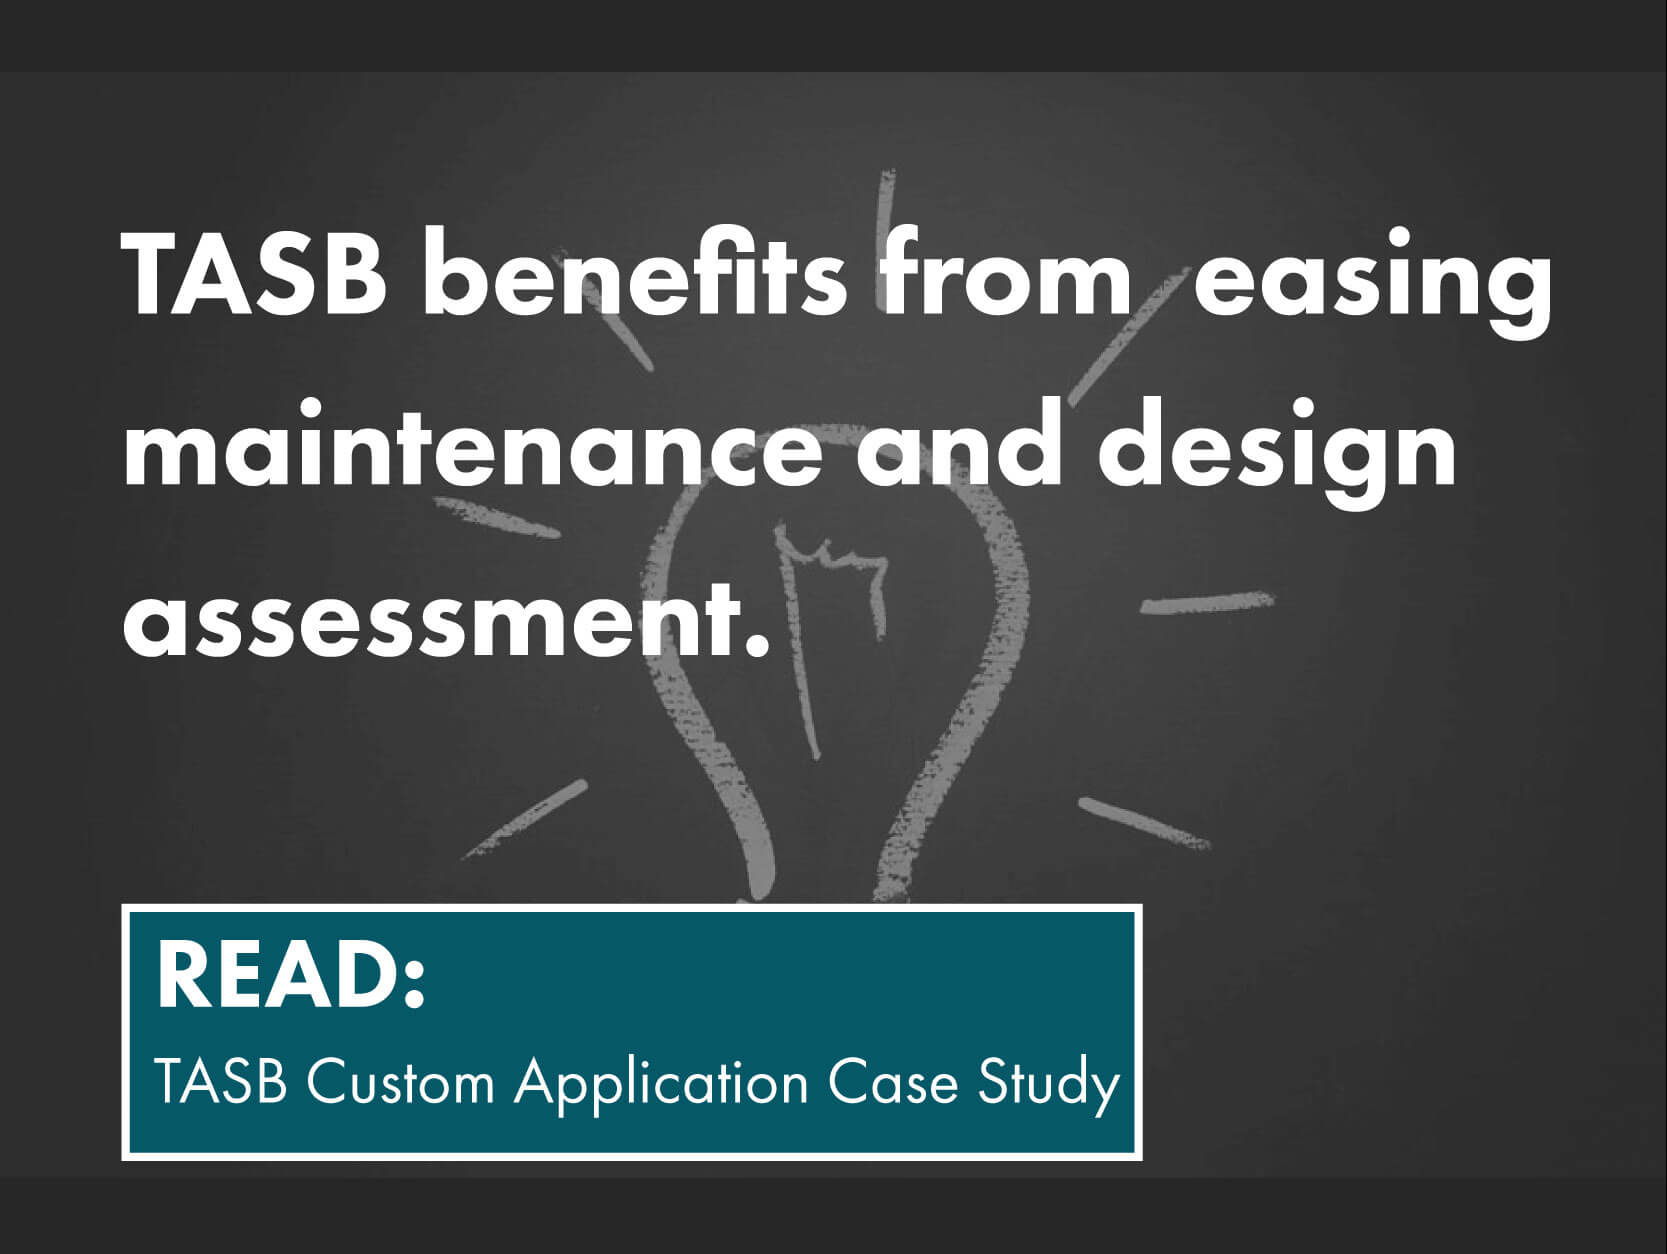 TASB benefits from easing maintenance and design assessment. Read about TASB and their Customer Application